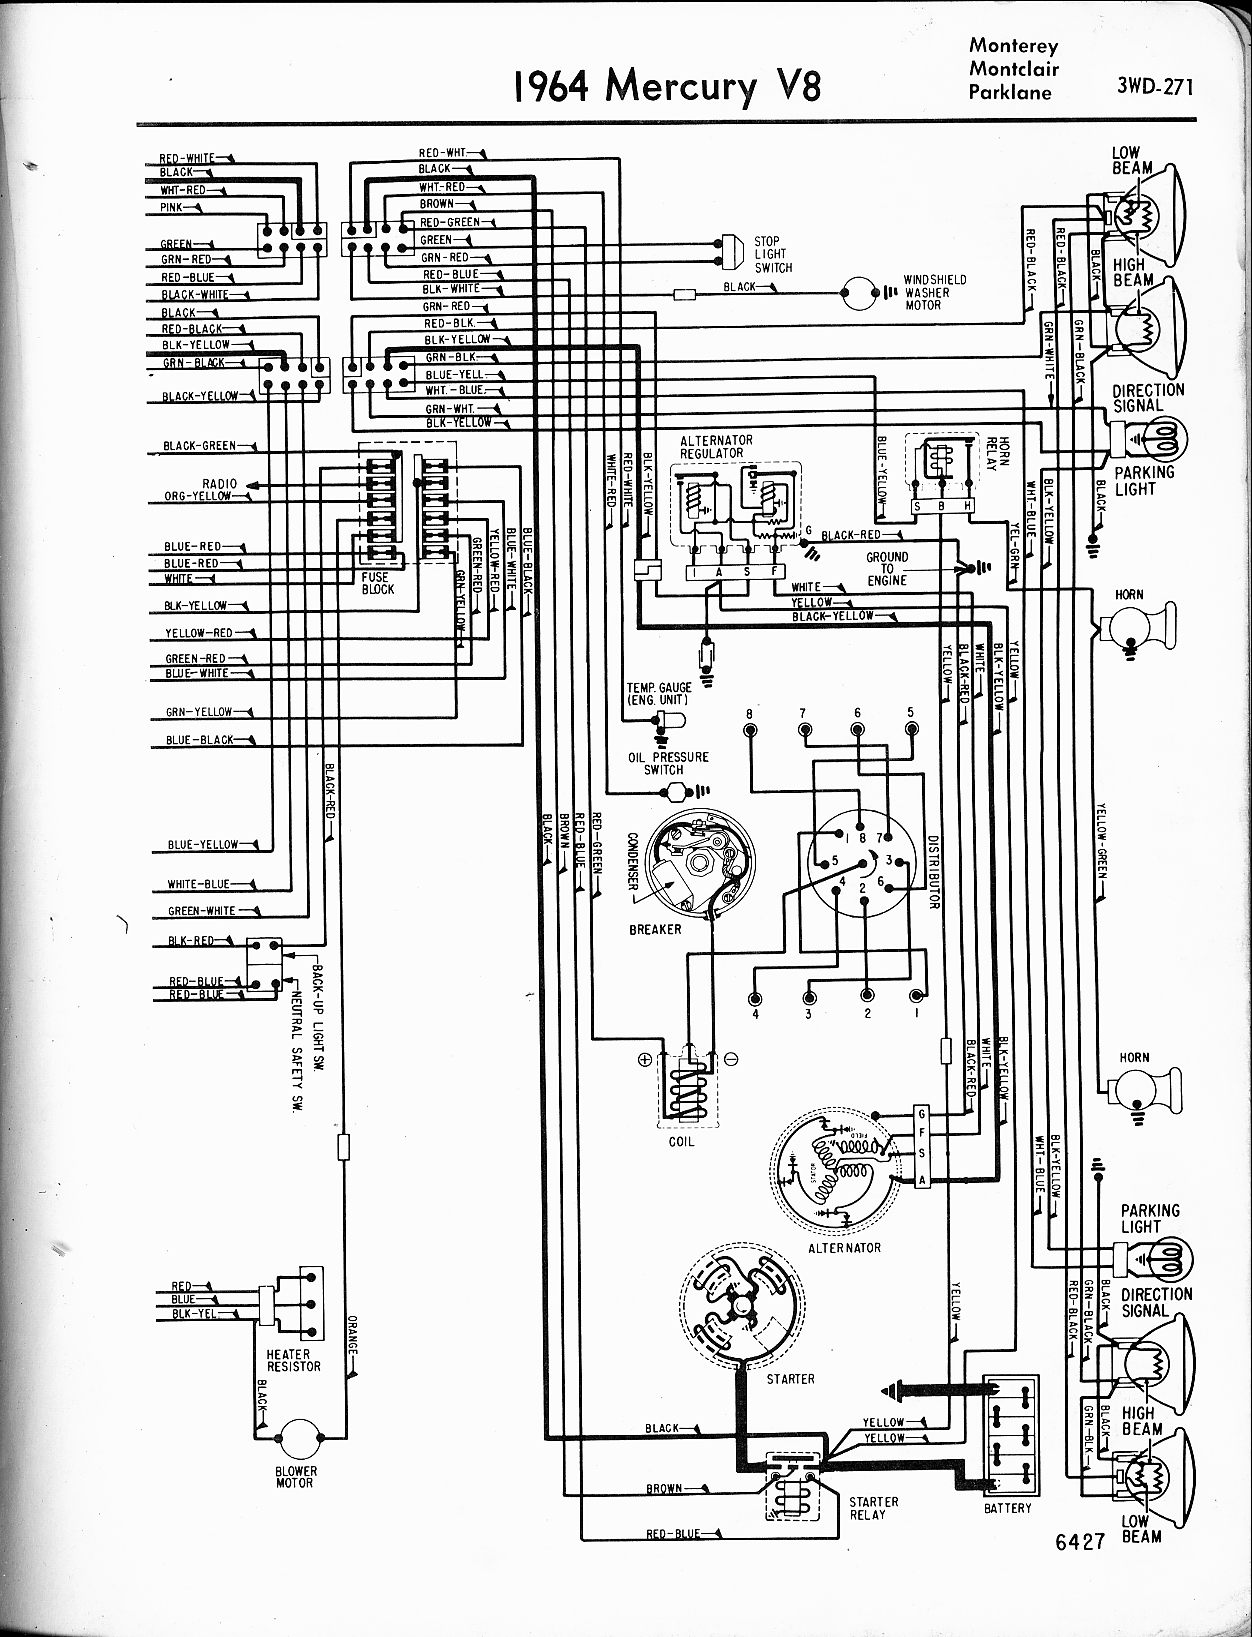 MWire5765 271 64 falcon wiring diagram 64 comet ignition wiring \u2022 wiring proteam 1500xp wiring diagram at readyjetset.co